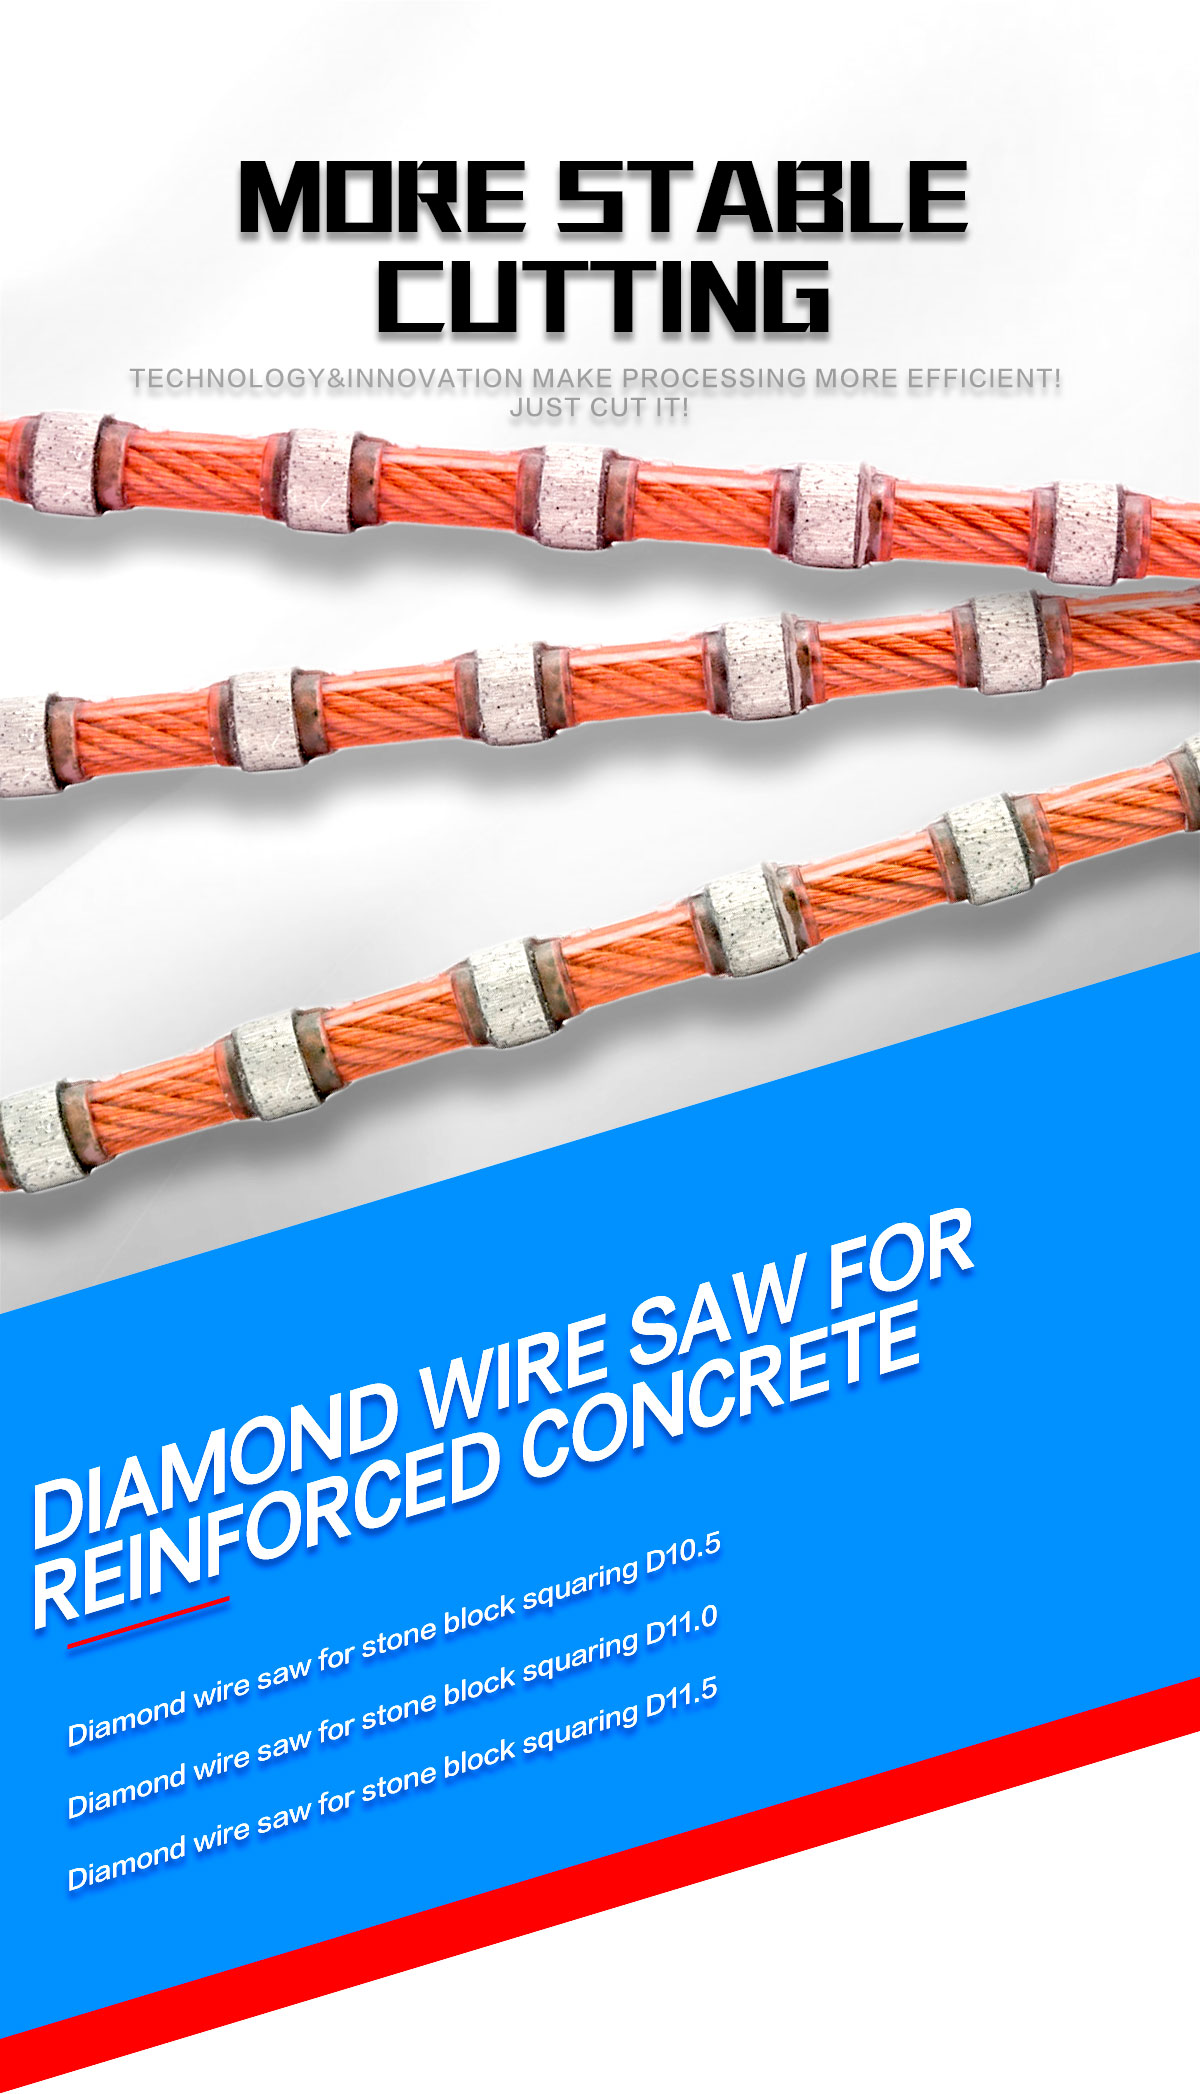 diamond wire saw for block squaring